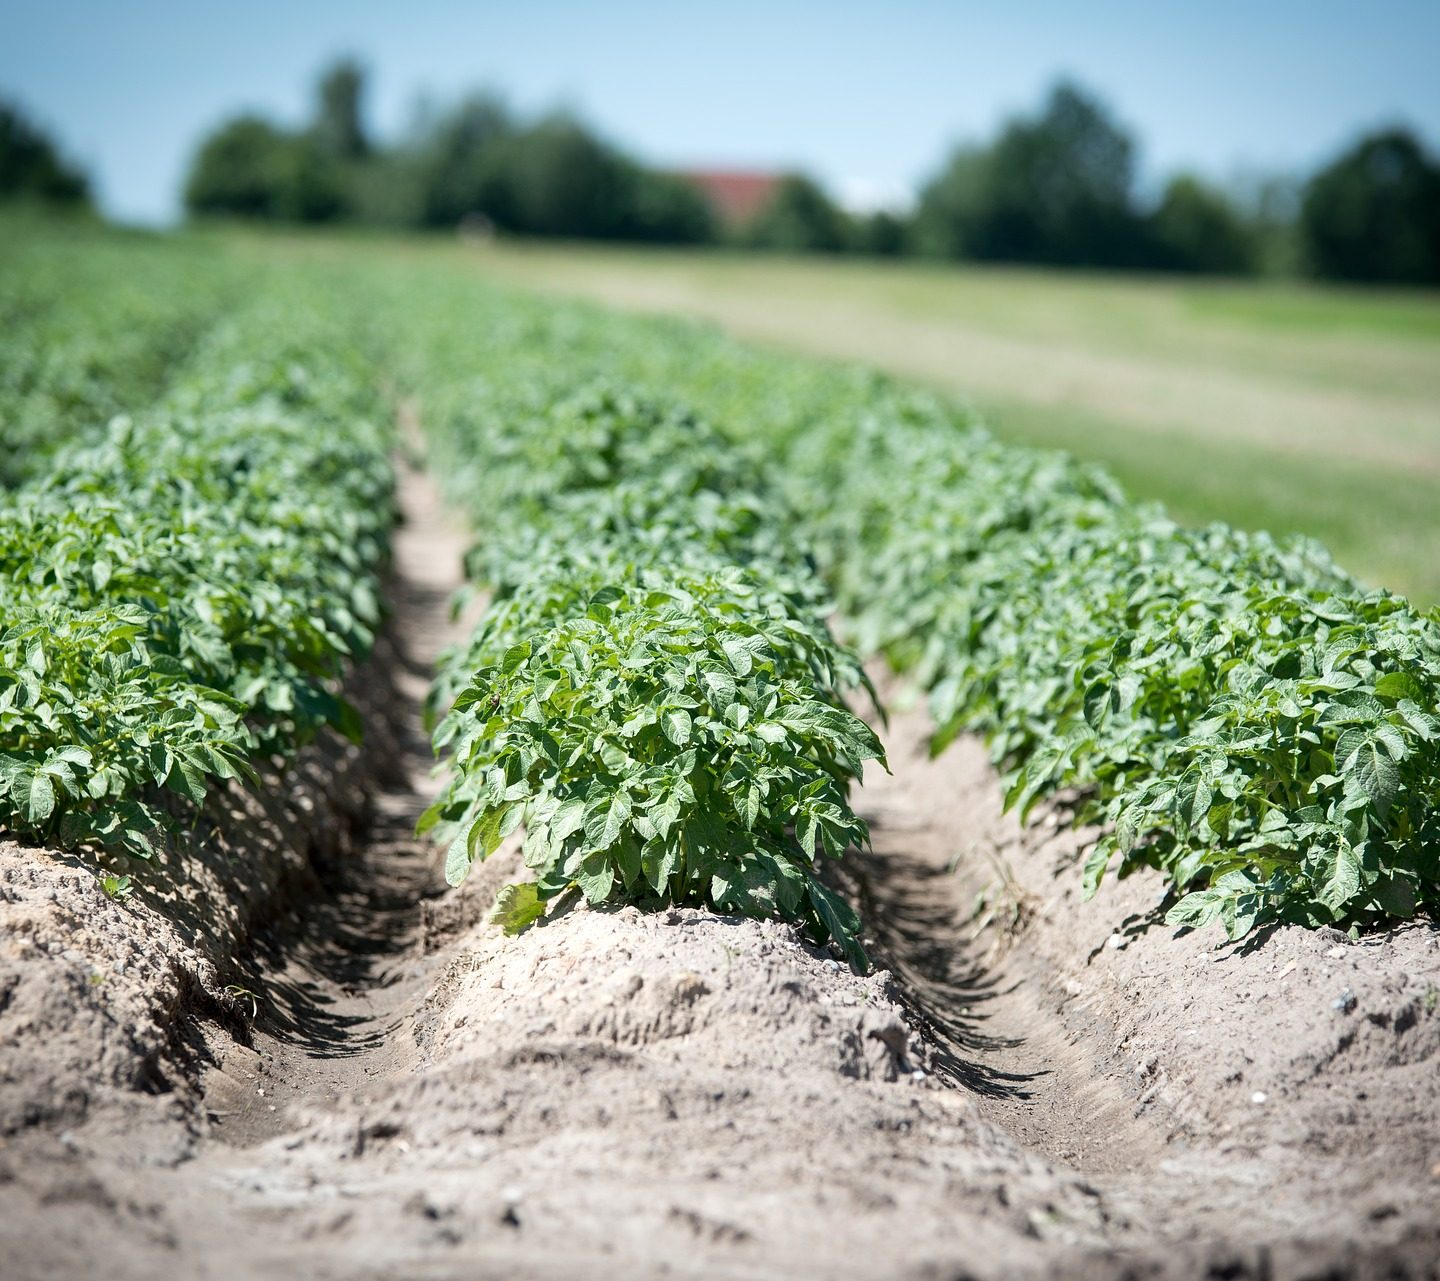 How potatoes could become sun worshippers